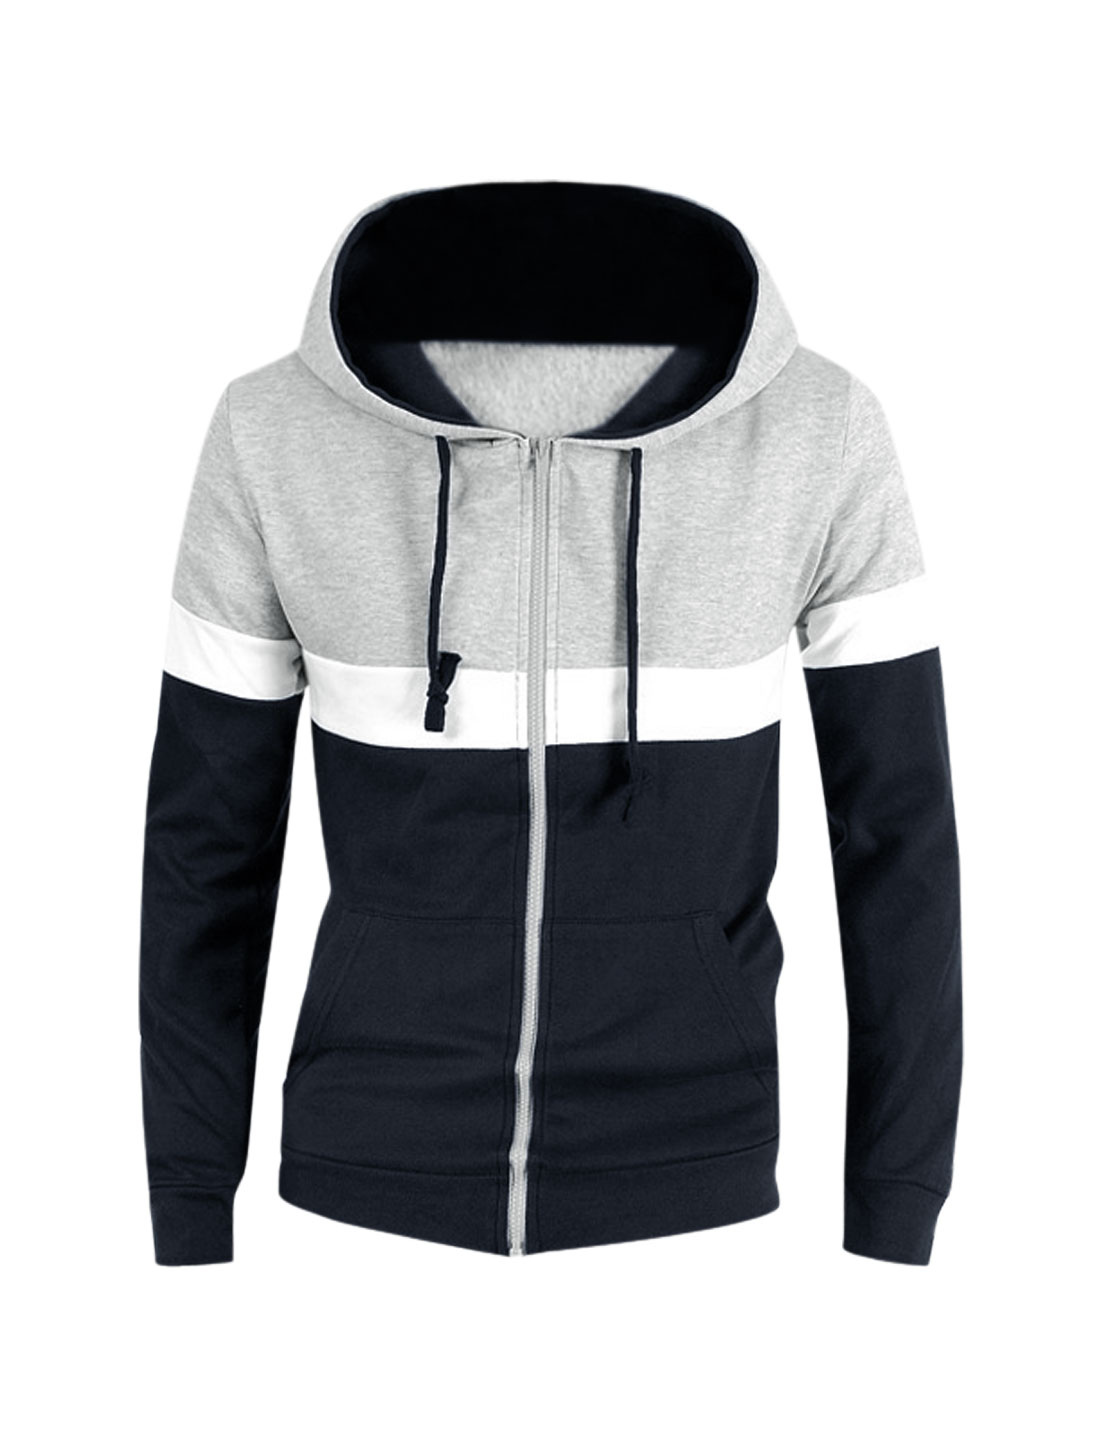 Men Navy Blue Gray Zip Fly Color Block Drawstring Hoodie Jacket S